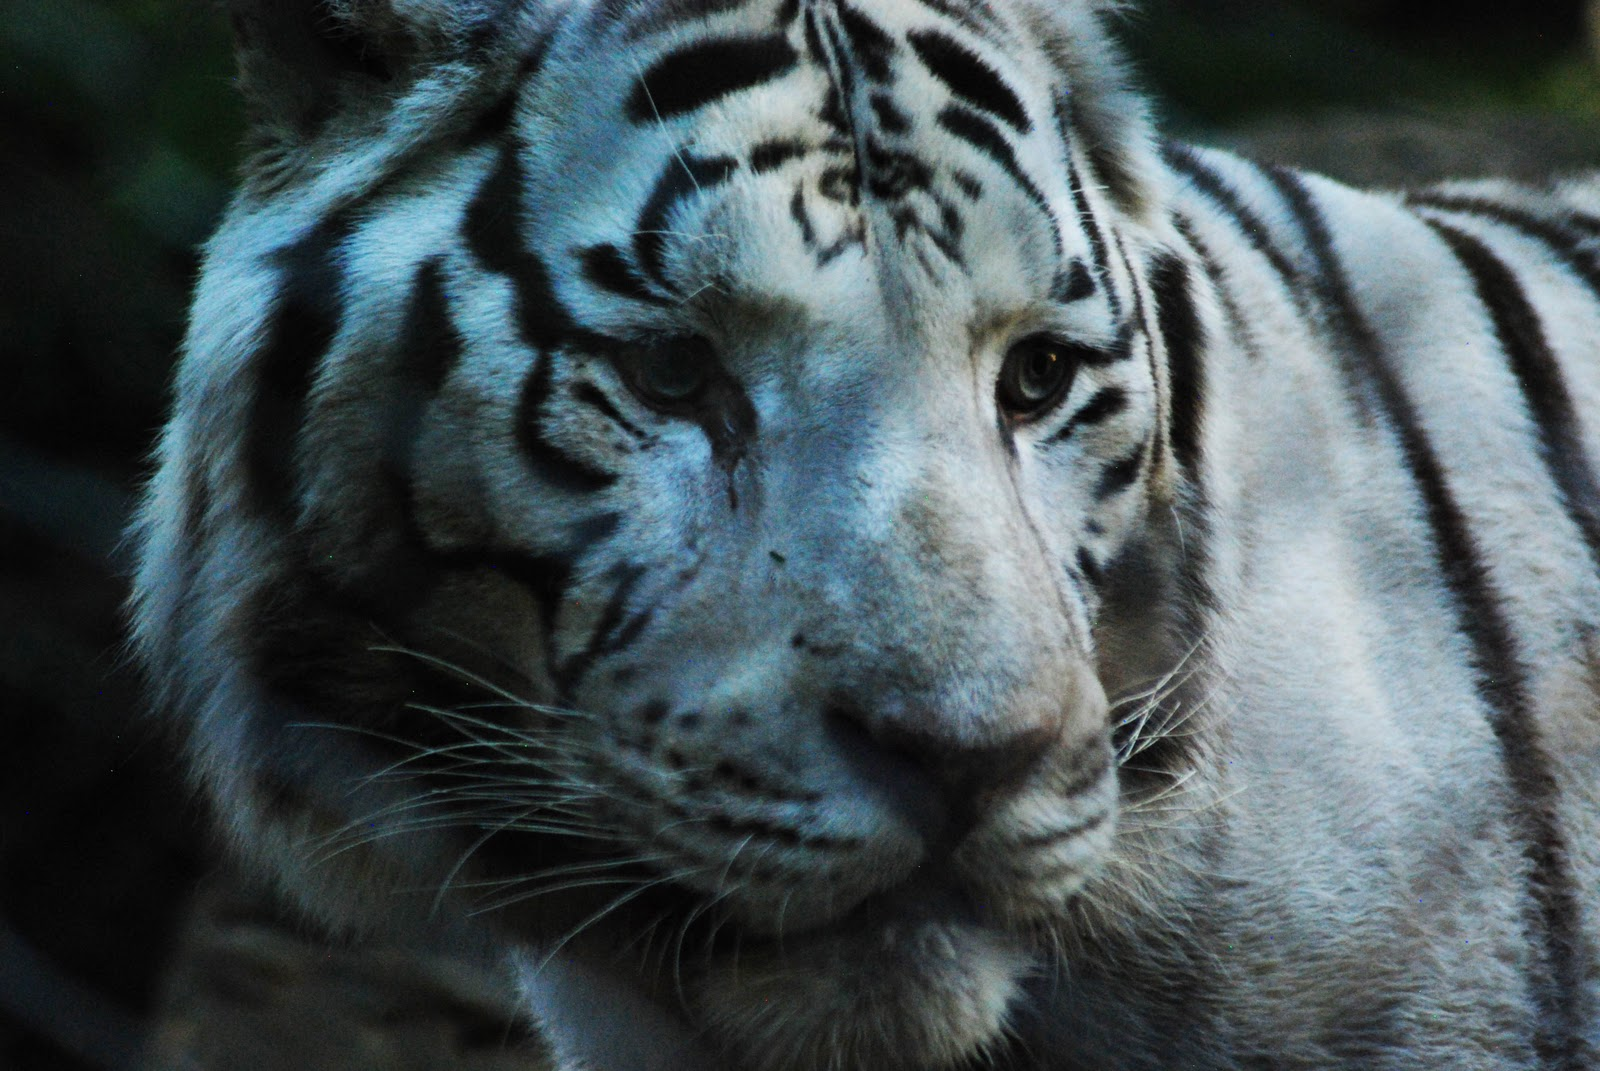 Tiger Eyes Black And White The white tiger is white with Tiger Eyes Black And White